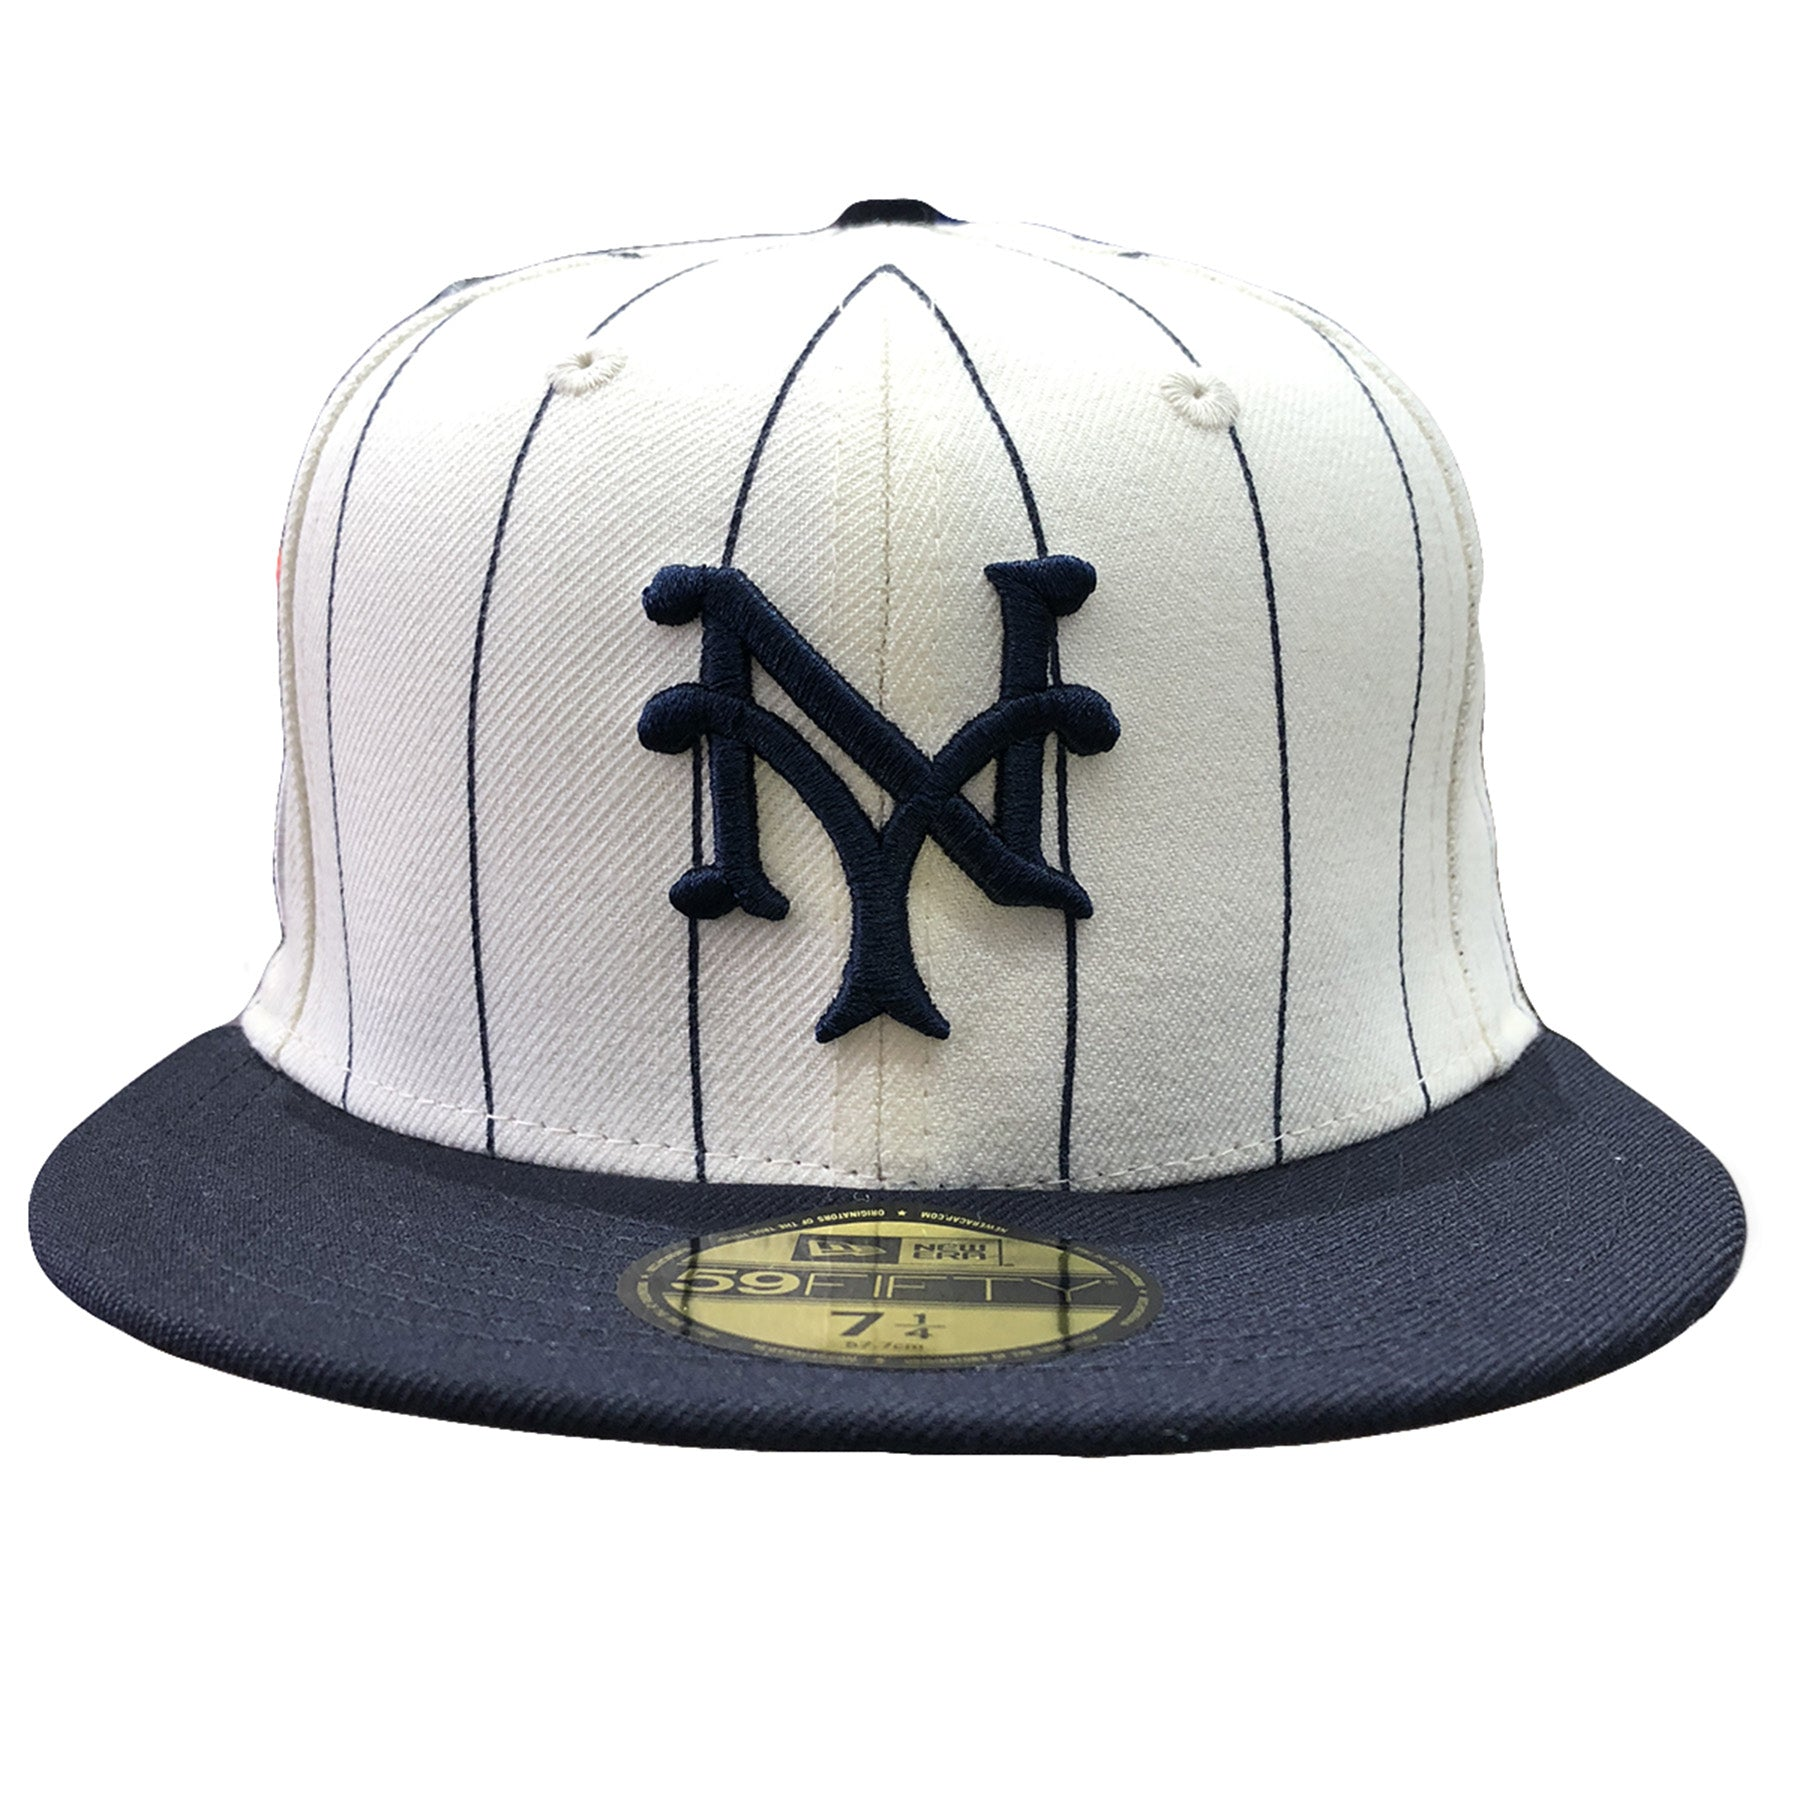 competitive price c2c99 2a662 Embroidered on the front of the 1922 New York Giants World Series Fitted Cap  is the